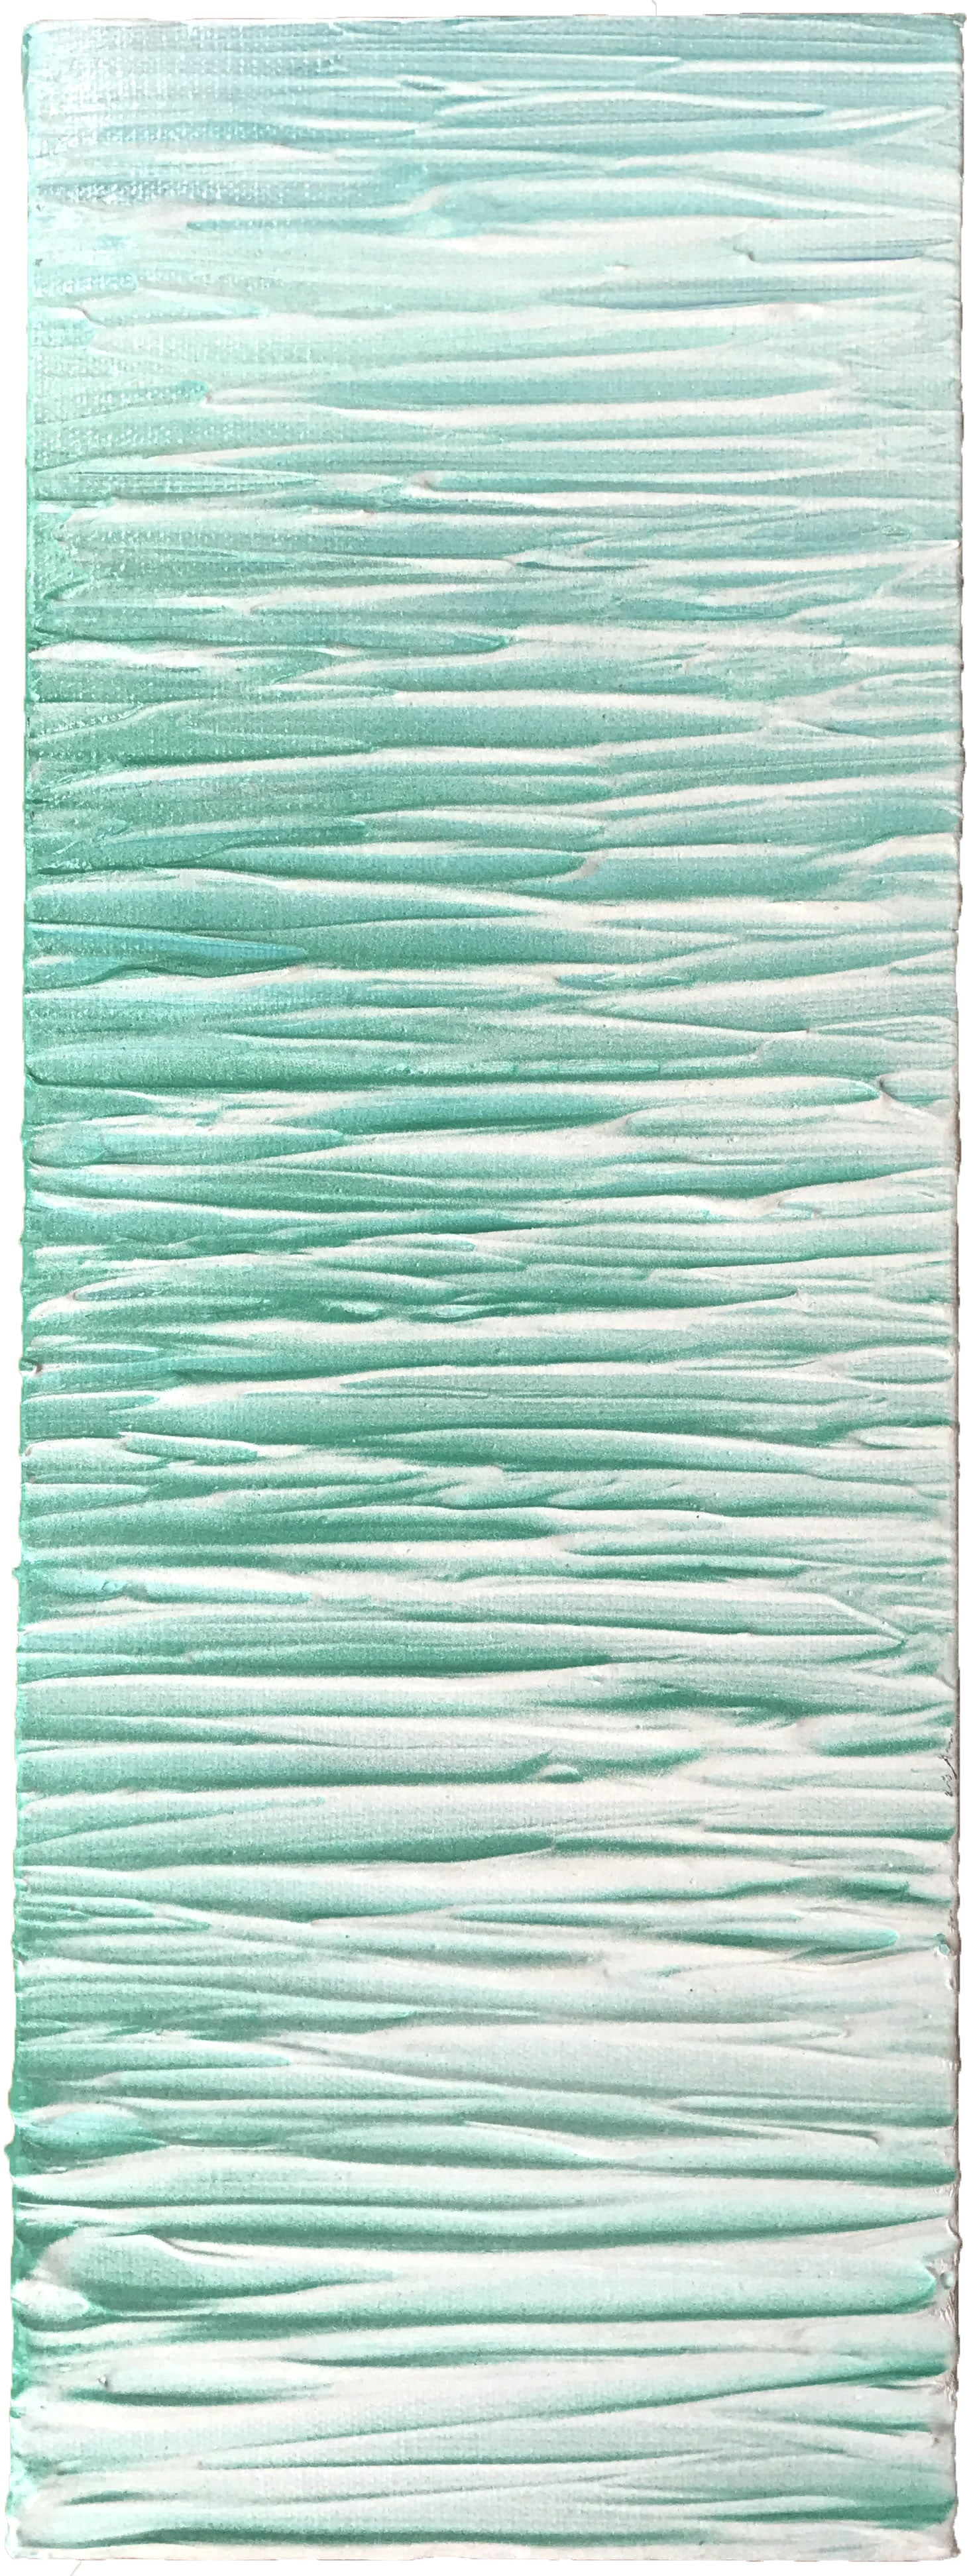 Tropical Ripples - Abstract Sea Painting